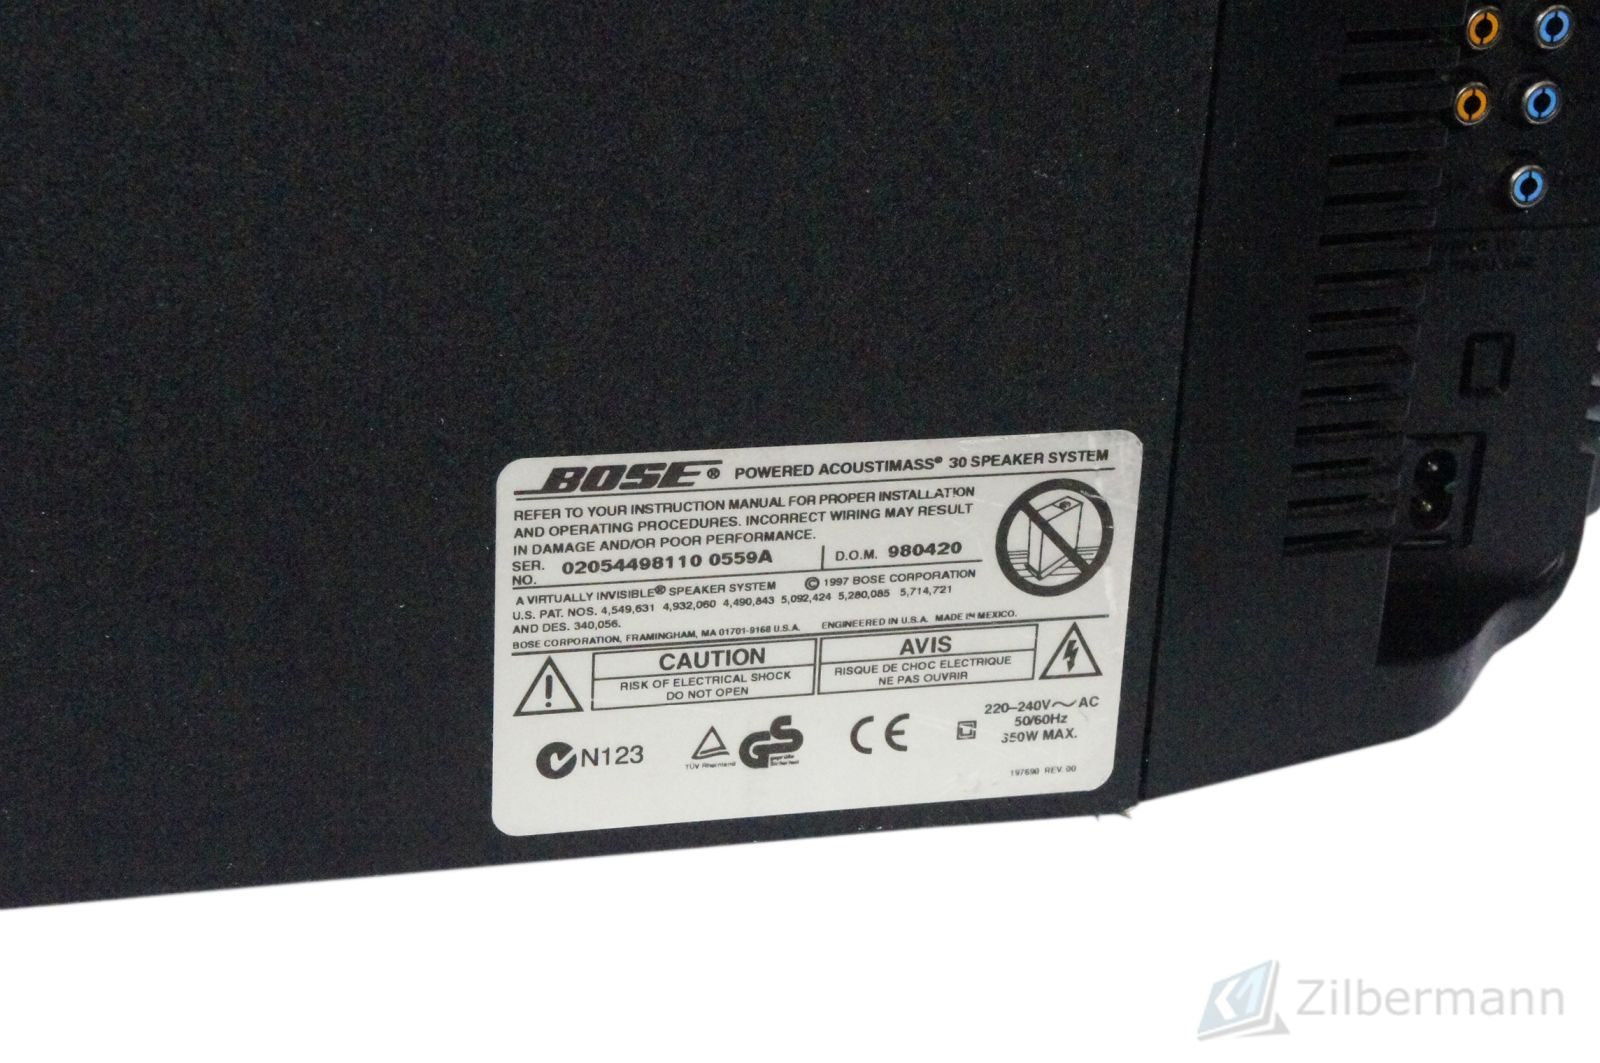 Bose_Acoustimass_30_Series_II_Powered_Subwoofer_07